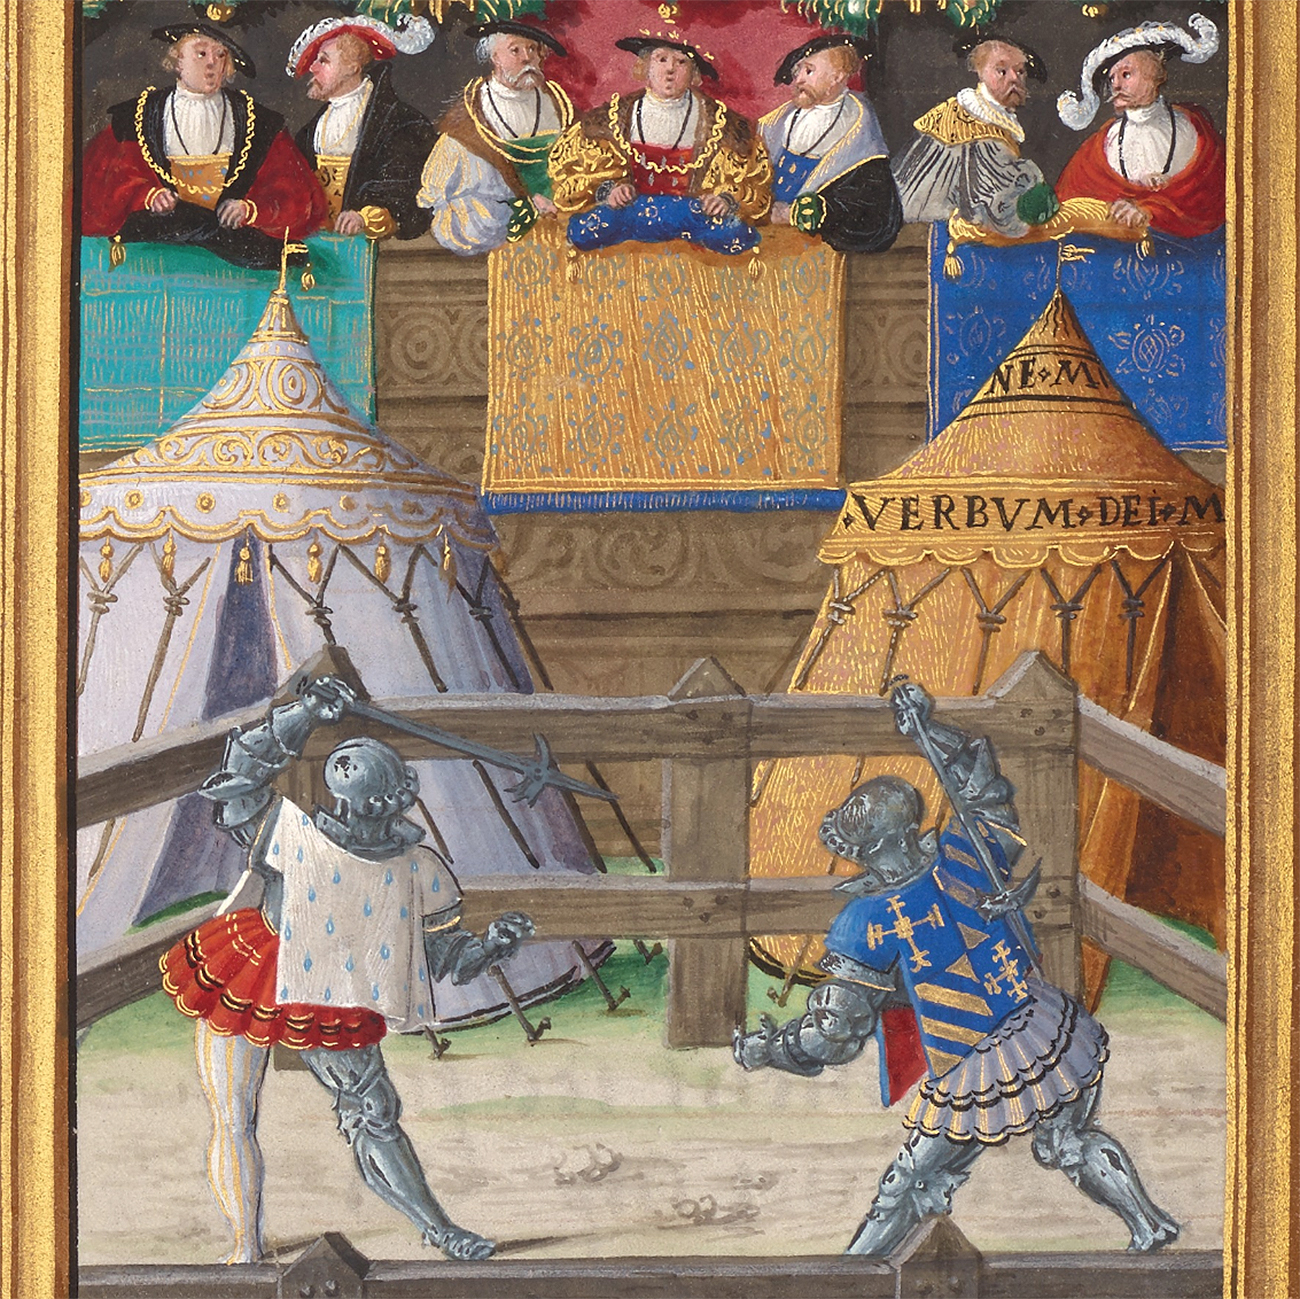 Jacques de Lalaing Fighting Jean Pitois at the Passage of Arms of the Fountain of Tears, about 1530–40, Circle of the Master of Charles V. Tempera colors and gold on parchment, 14 5/16 x 10 5/16 in. The J. Paul Getty Museum, Ms. 114, fol. 129v. Acquired in honor of Thomas Kren. Digital image courtesy of the Getty's Open Content Program